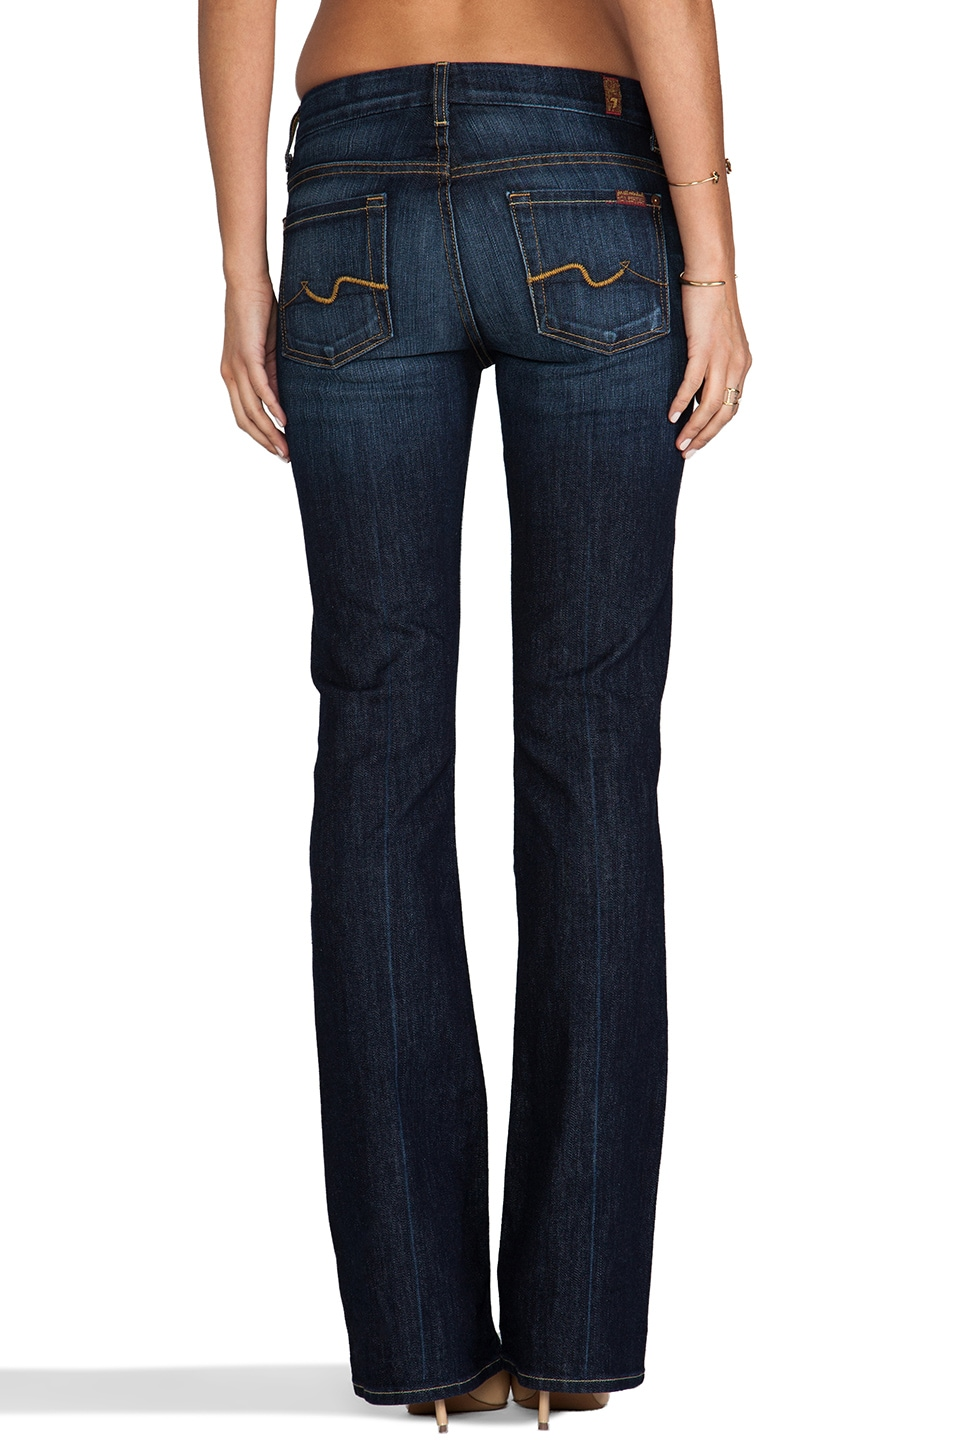 7 For All Mankind Kimmie Bootcut in Midnight New York Dark